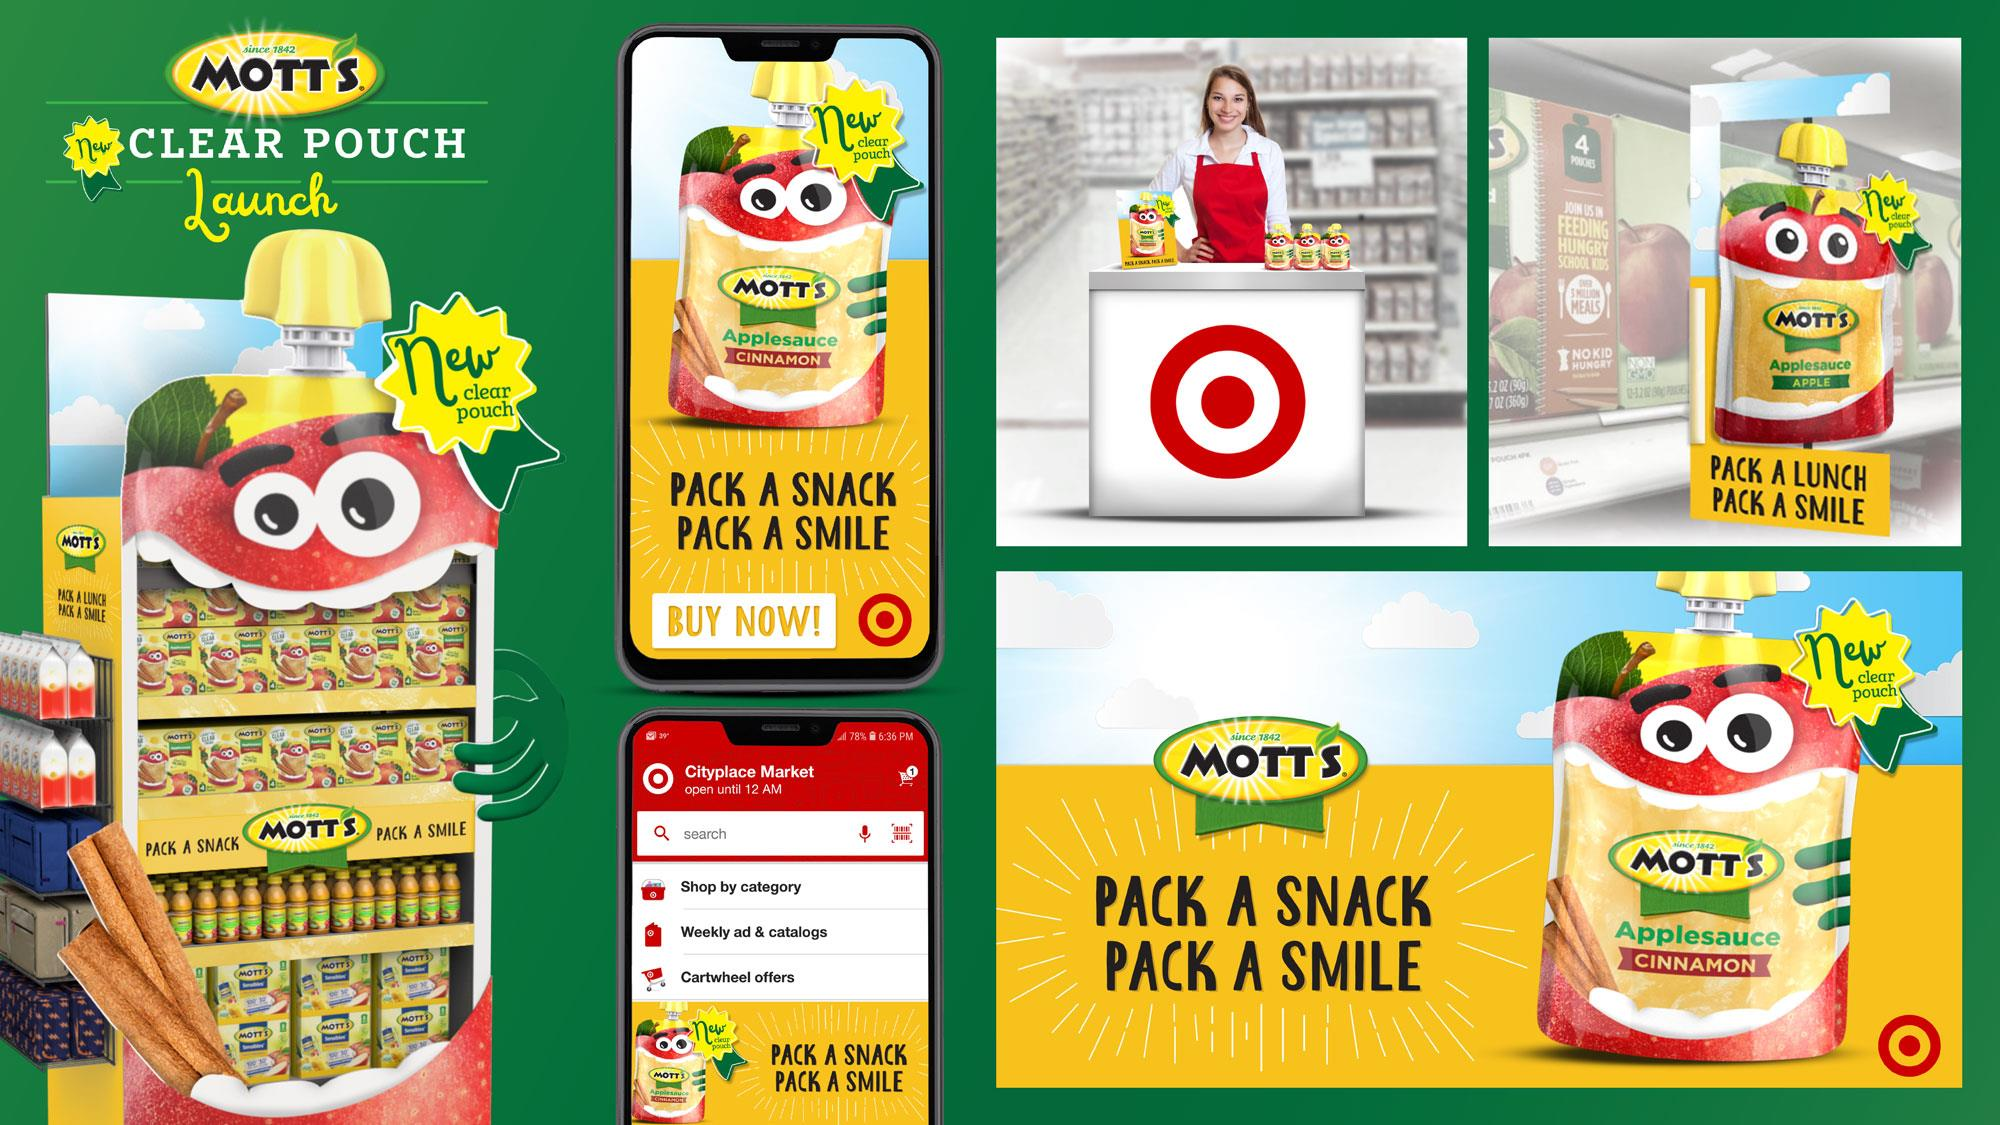 Mott's | Pack A Snack Pack A Smile